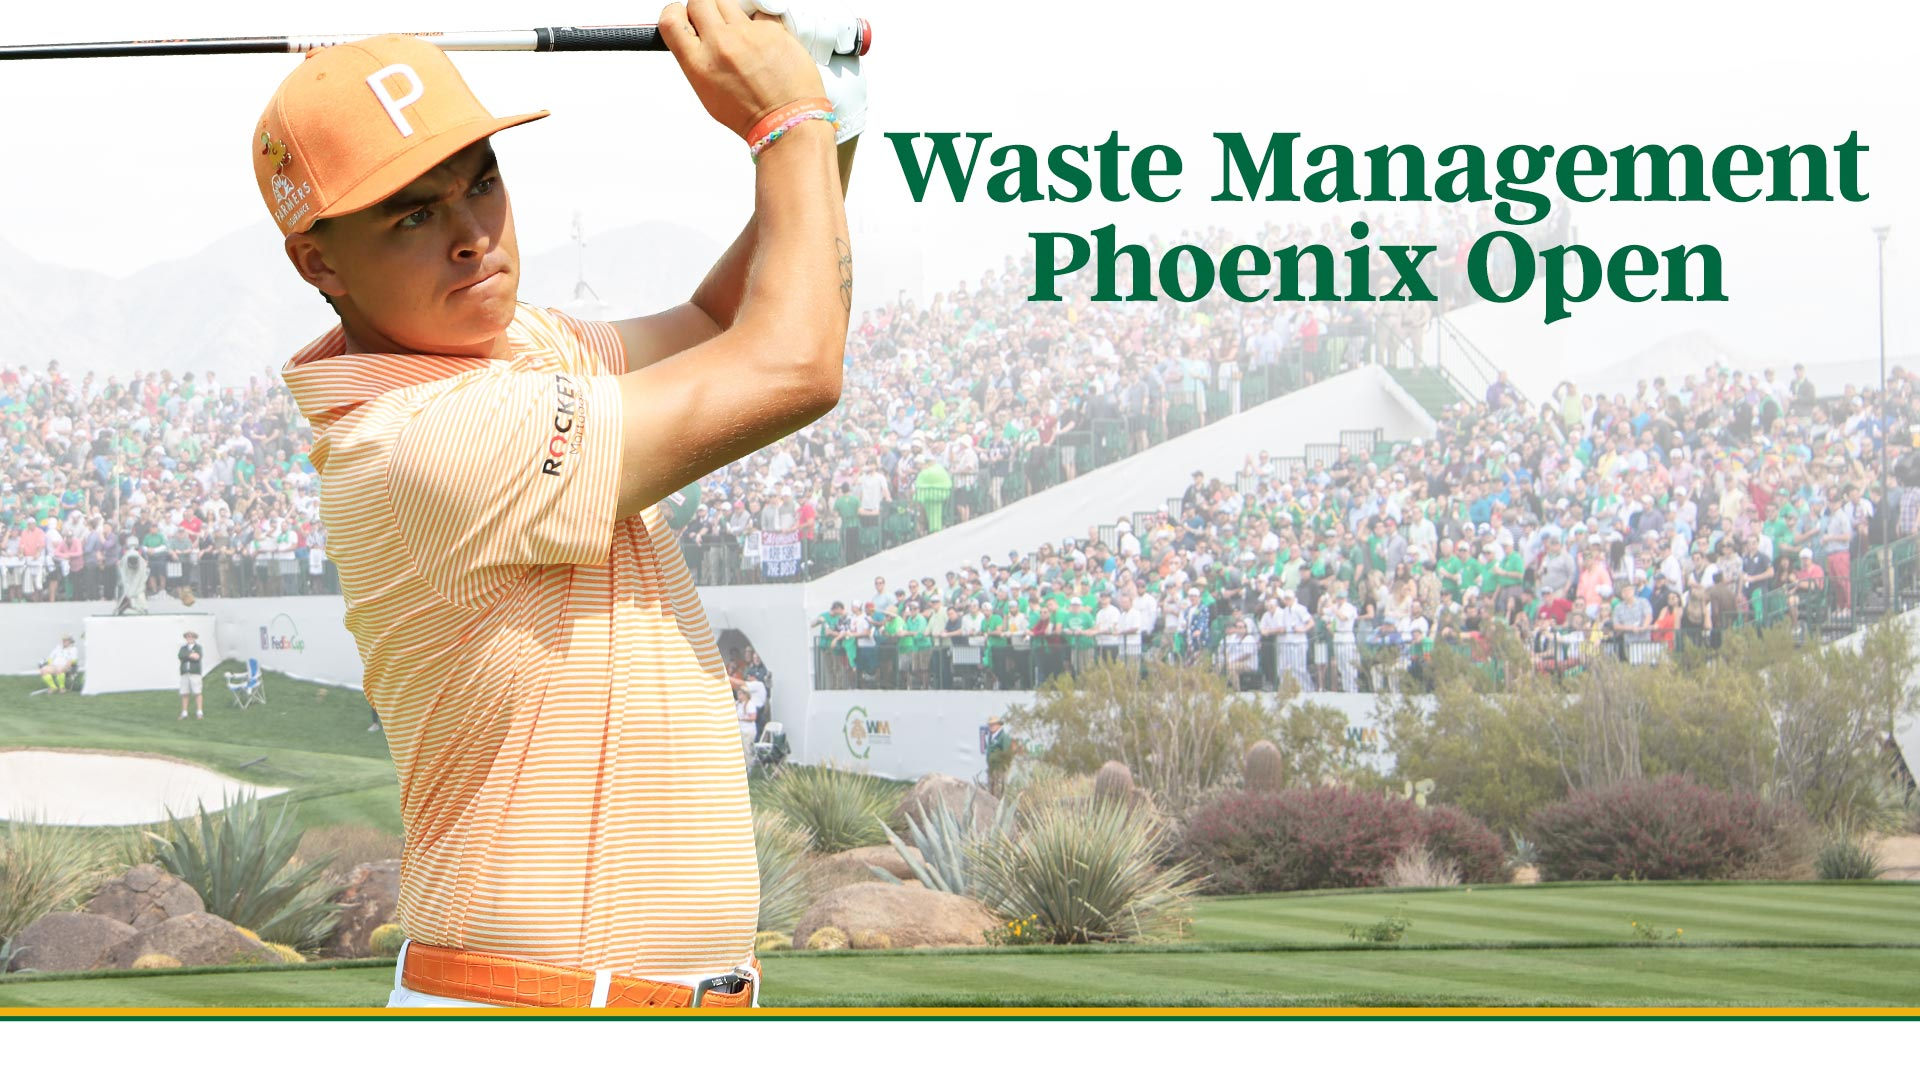 2020 waste management phoenix open